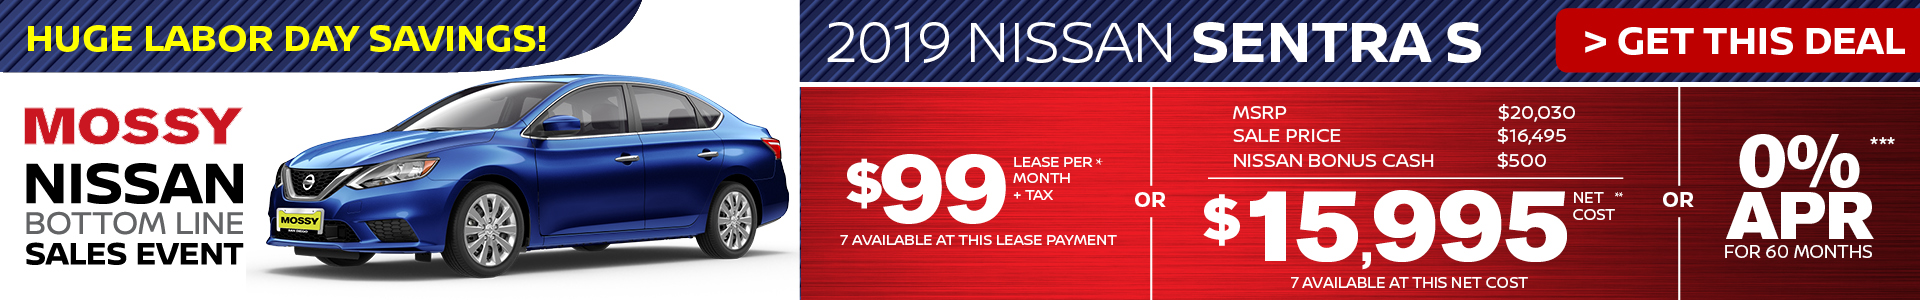 Mossy Nissan - Nissan Sentra $15,995 Purchase